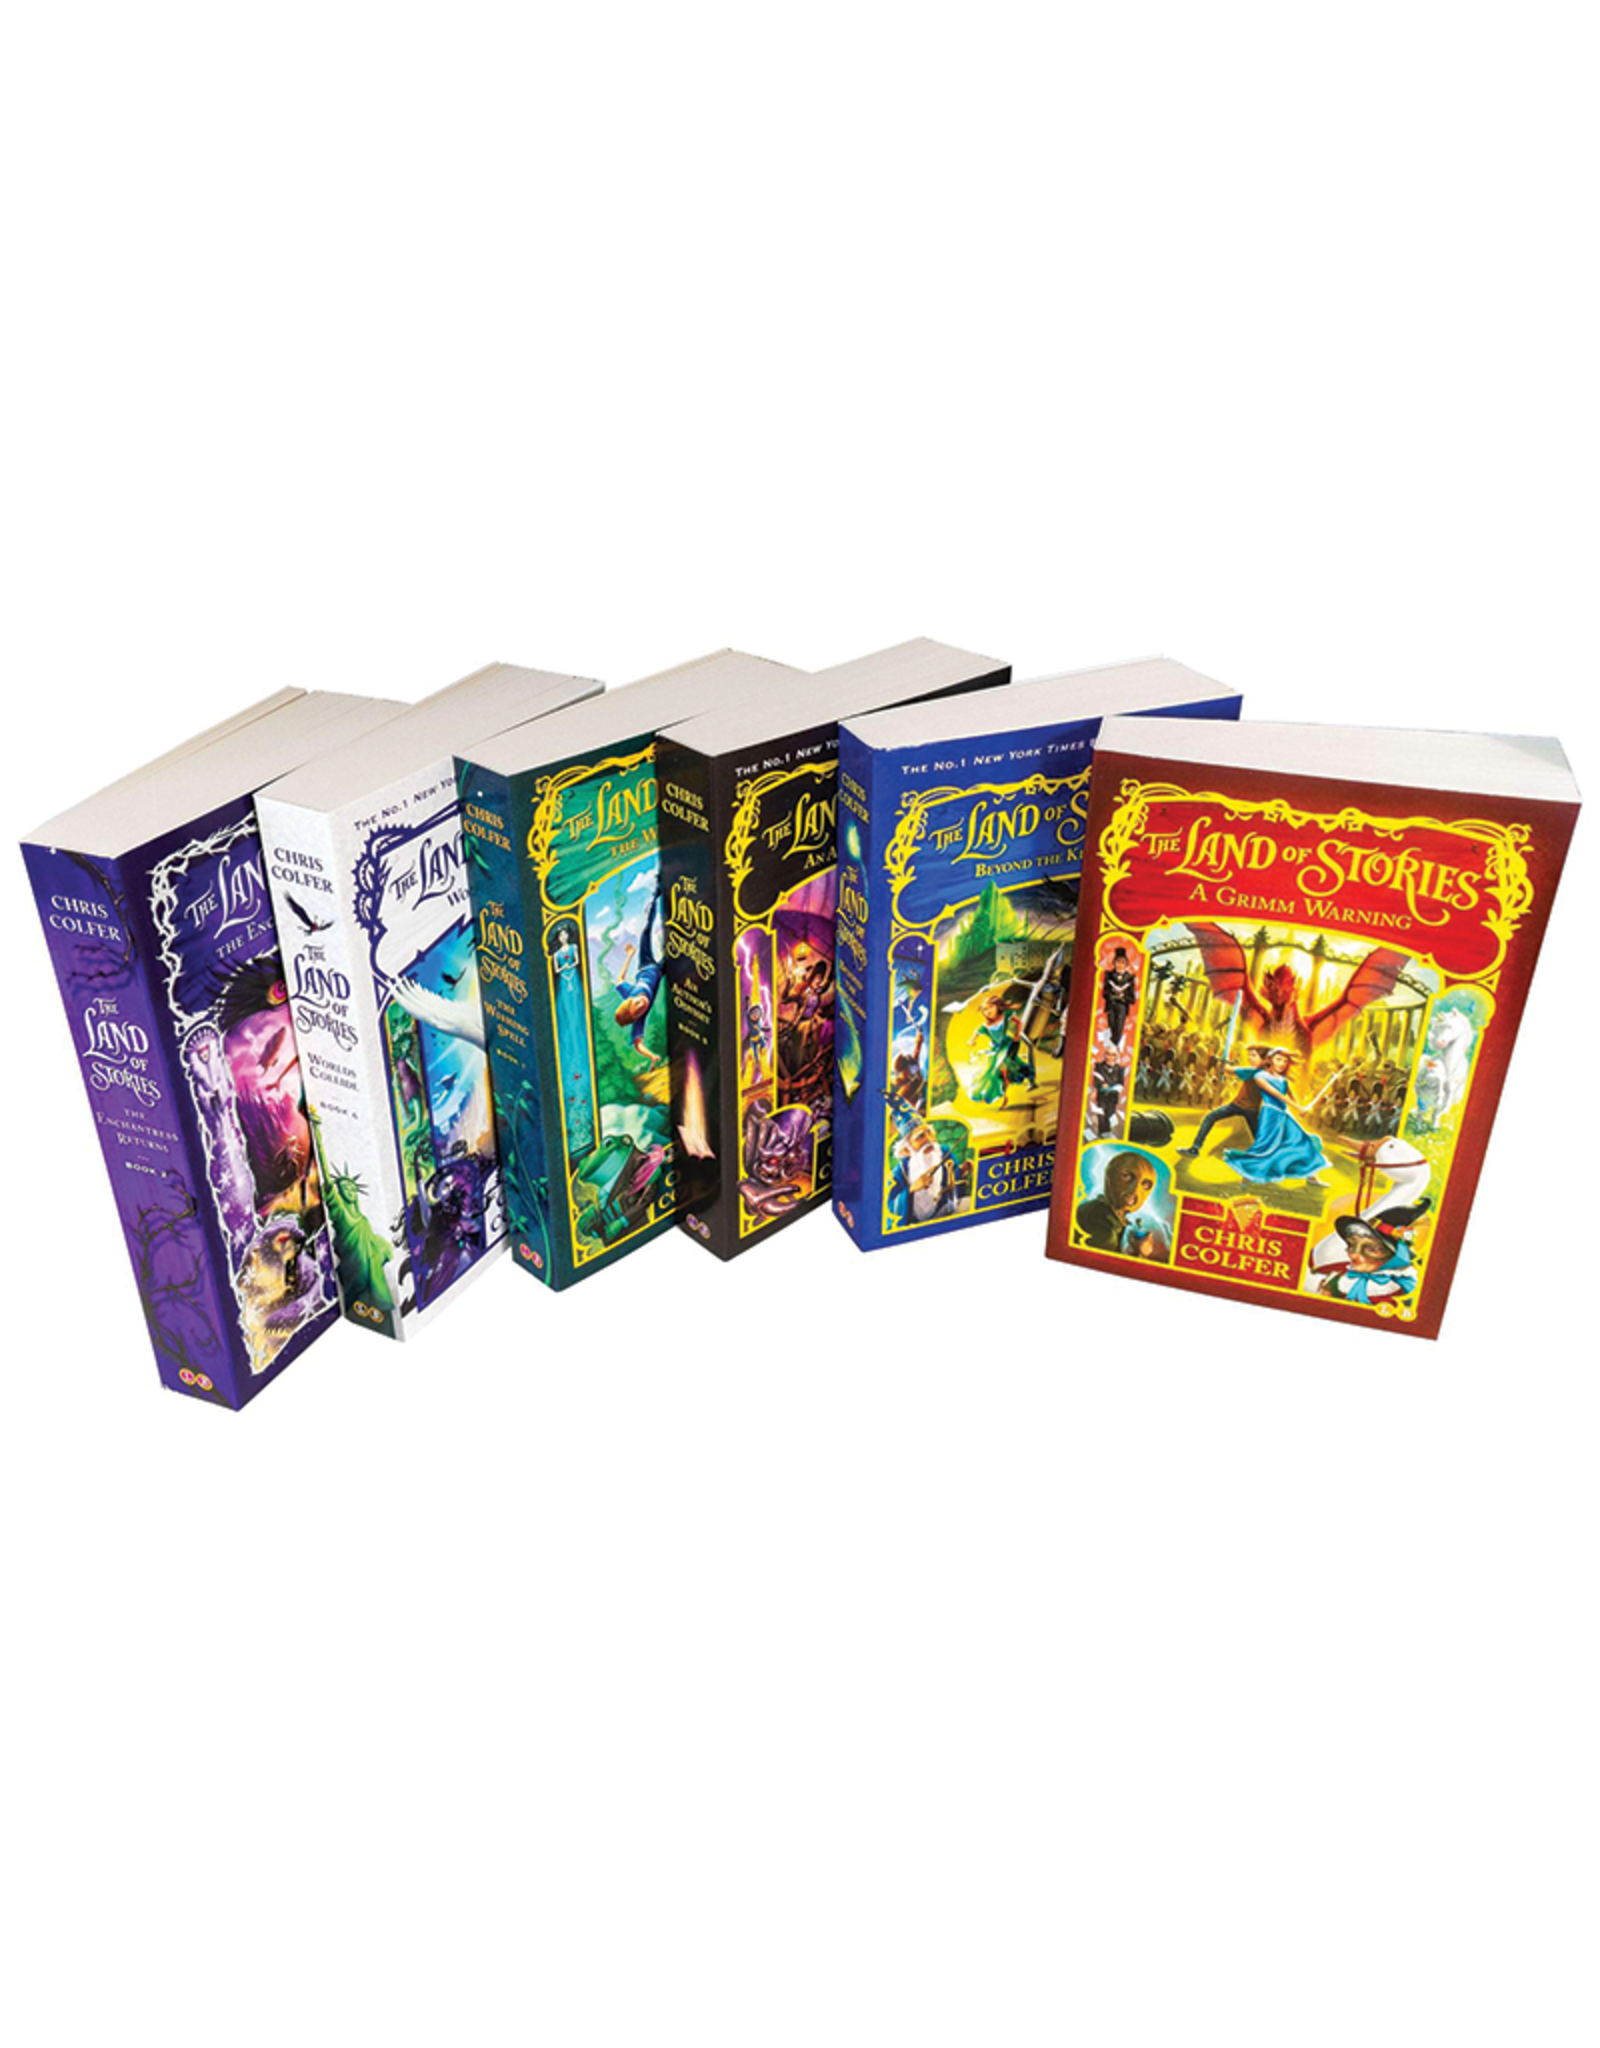 The Land of Stories Boxed Set